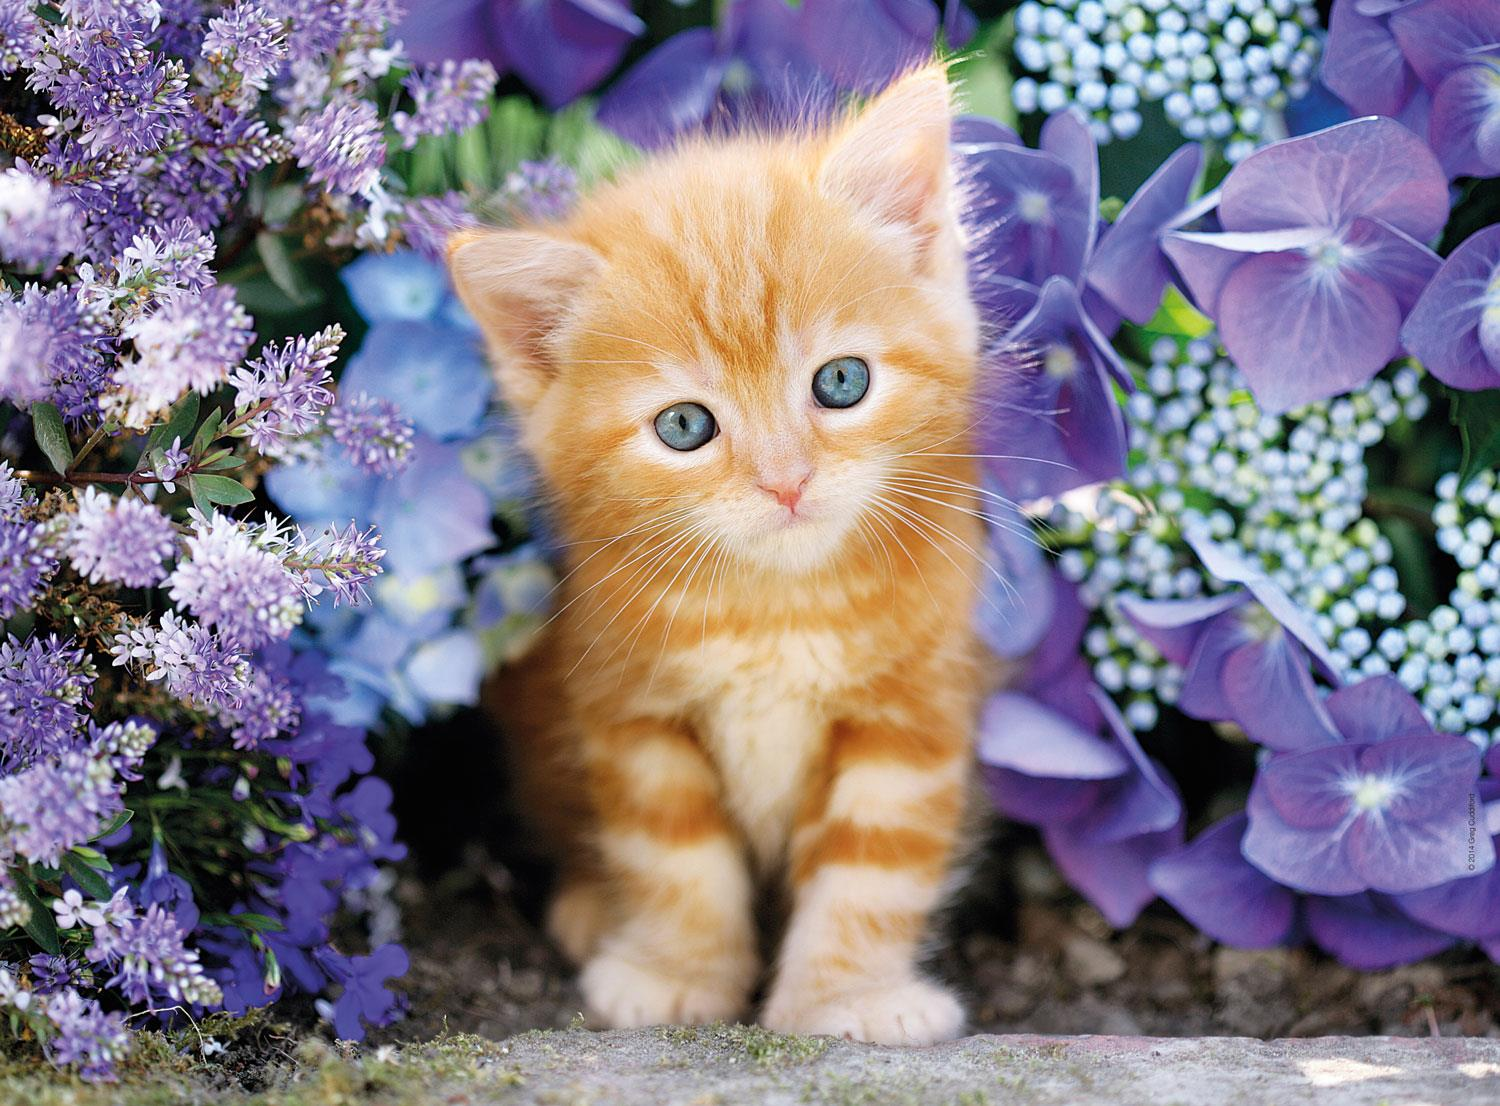 Clementoni Ginger Cat In Flowers High Quality Jigsaw Puzzle (500 Pieces)